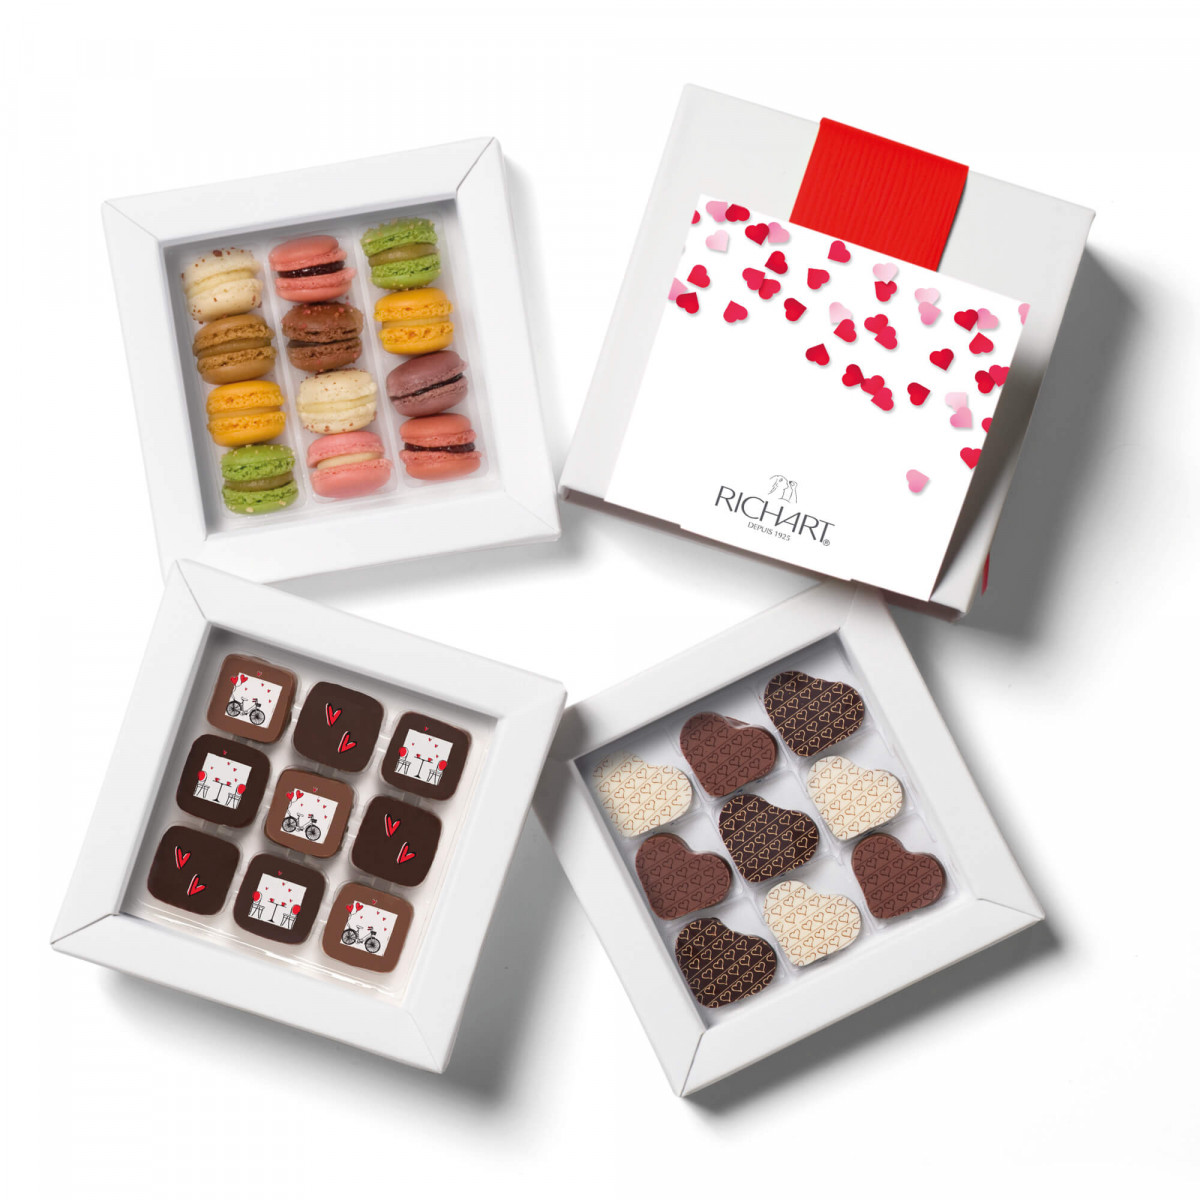 With all my heart assortment of Valentine's Day filled chocolates and heart shape chocolates